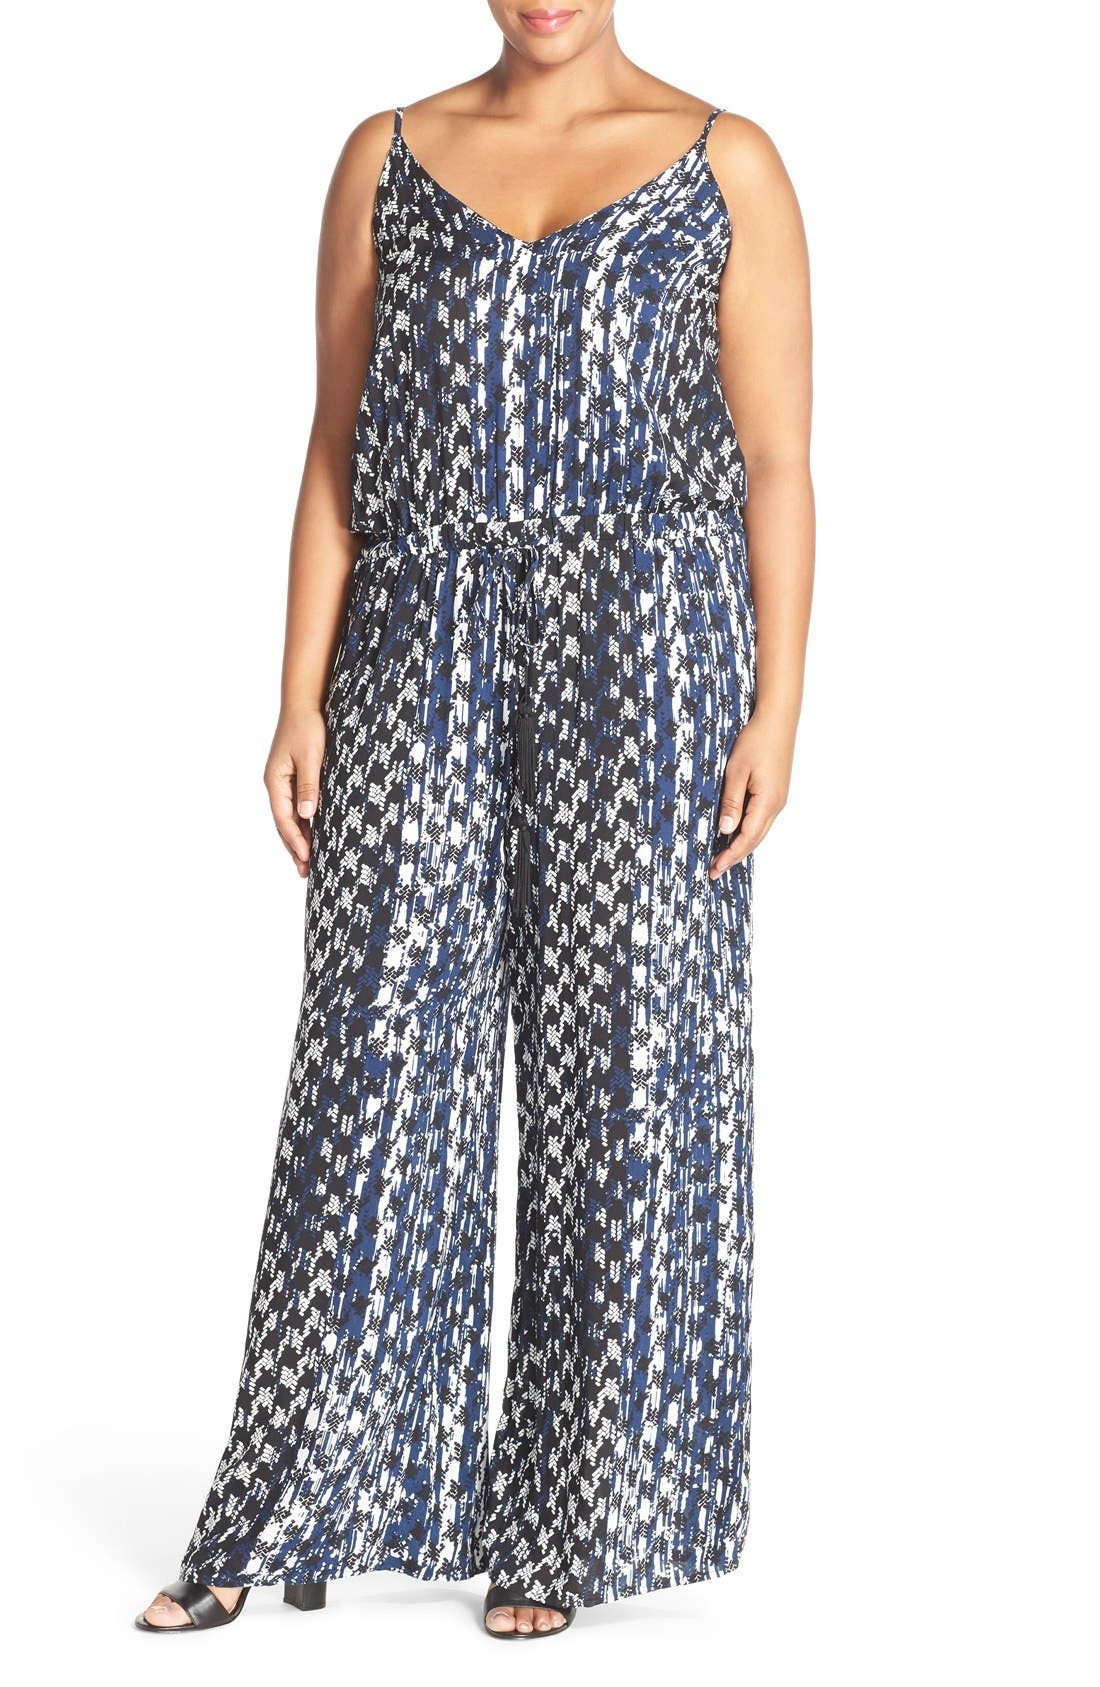 Alternate Image 1 Selected - City Chic 'Barbed' Print V-Neck Jumpsuit (Plus Size)